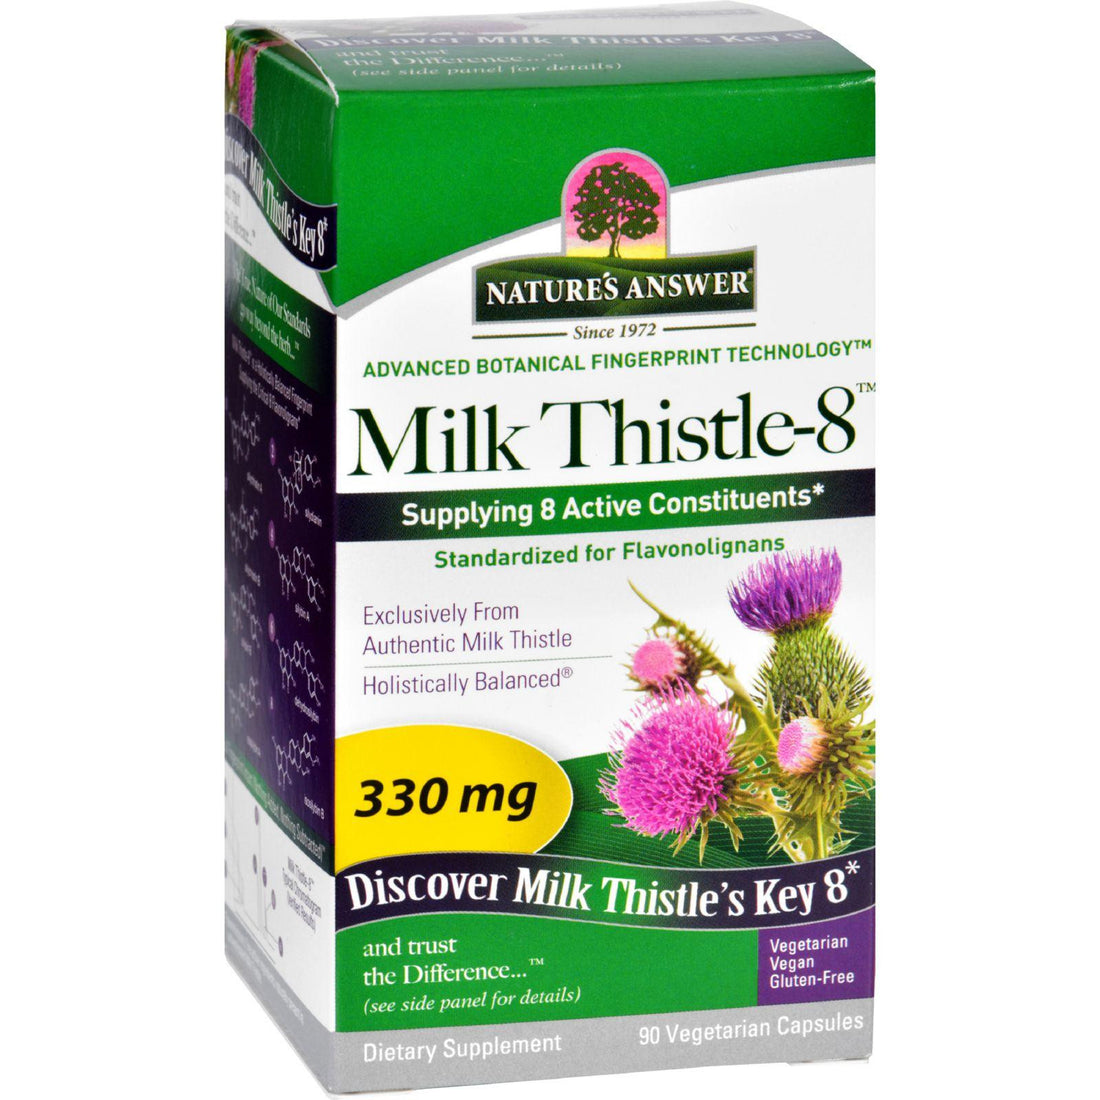 Mother Mantis: Nature's Answer Milk Thistle - Liquid Capsules - 330 Mg - 90 Veg Capsules Nature's Answer